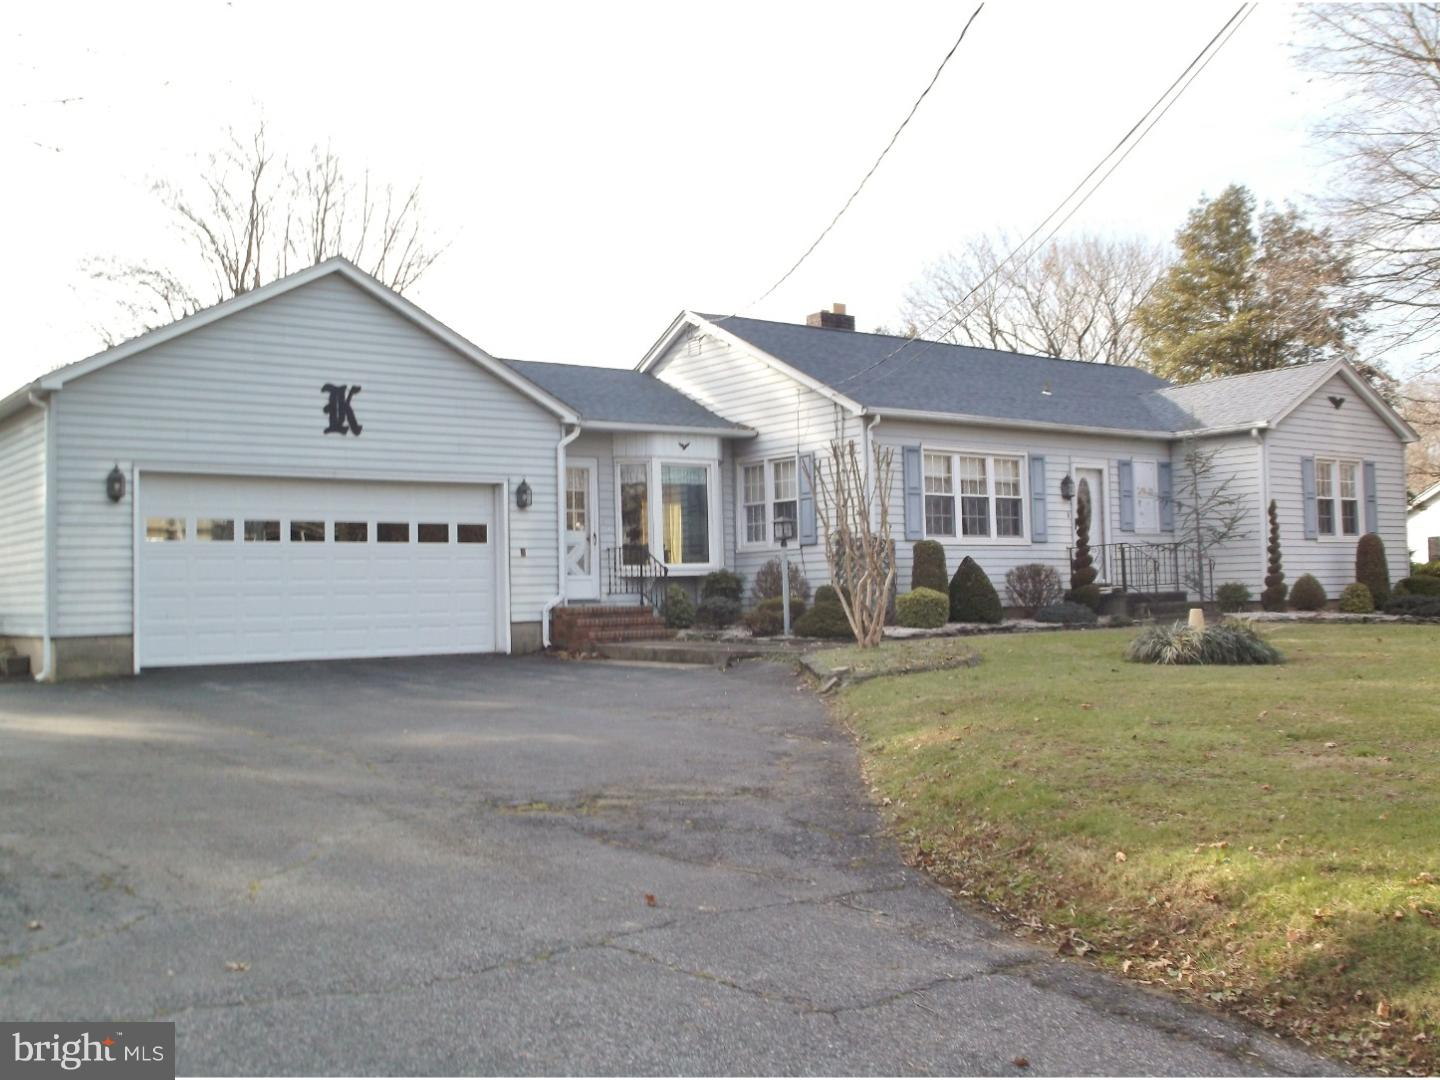 Single Family Home for Sale at 1492 ROUTE 77 Upper Deerfield Township, New Jersey 08302 United States